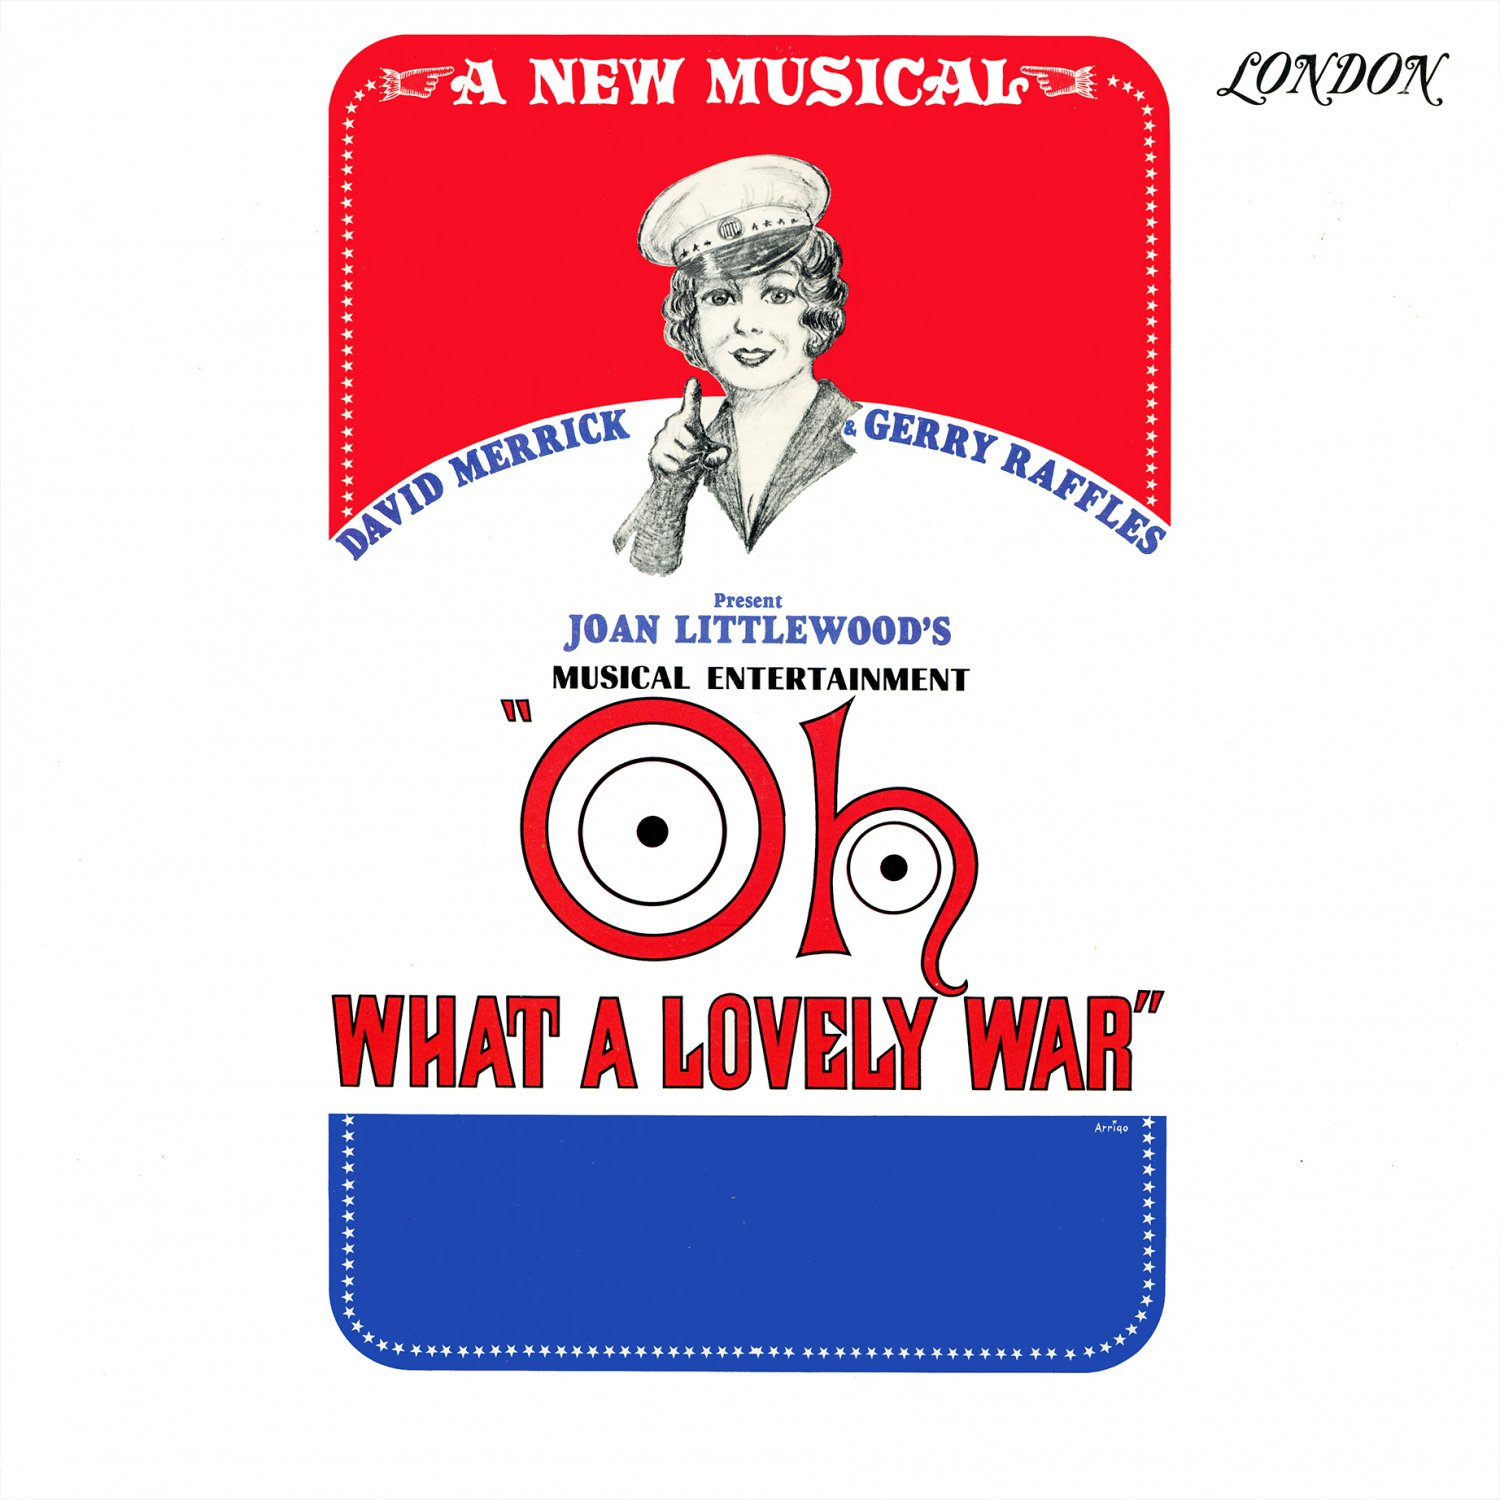 Oh What A Lovely War (A New Musical) - Original Cast Soundtrack, Joan Littlewood LP/CD